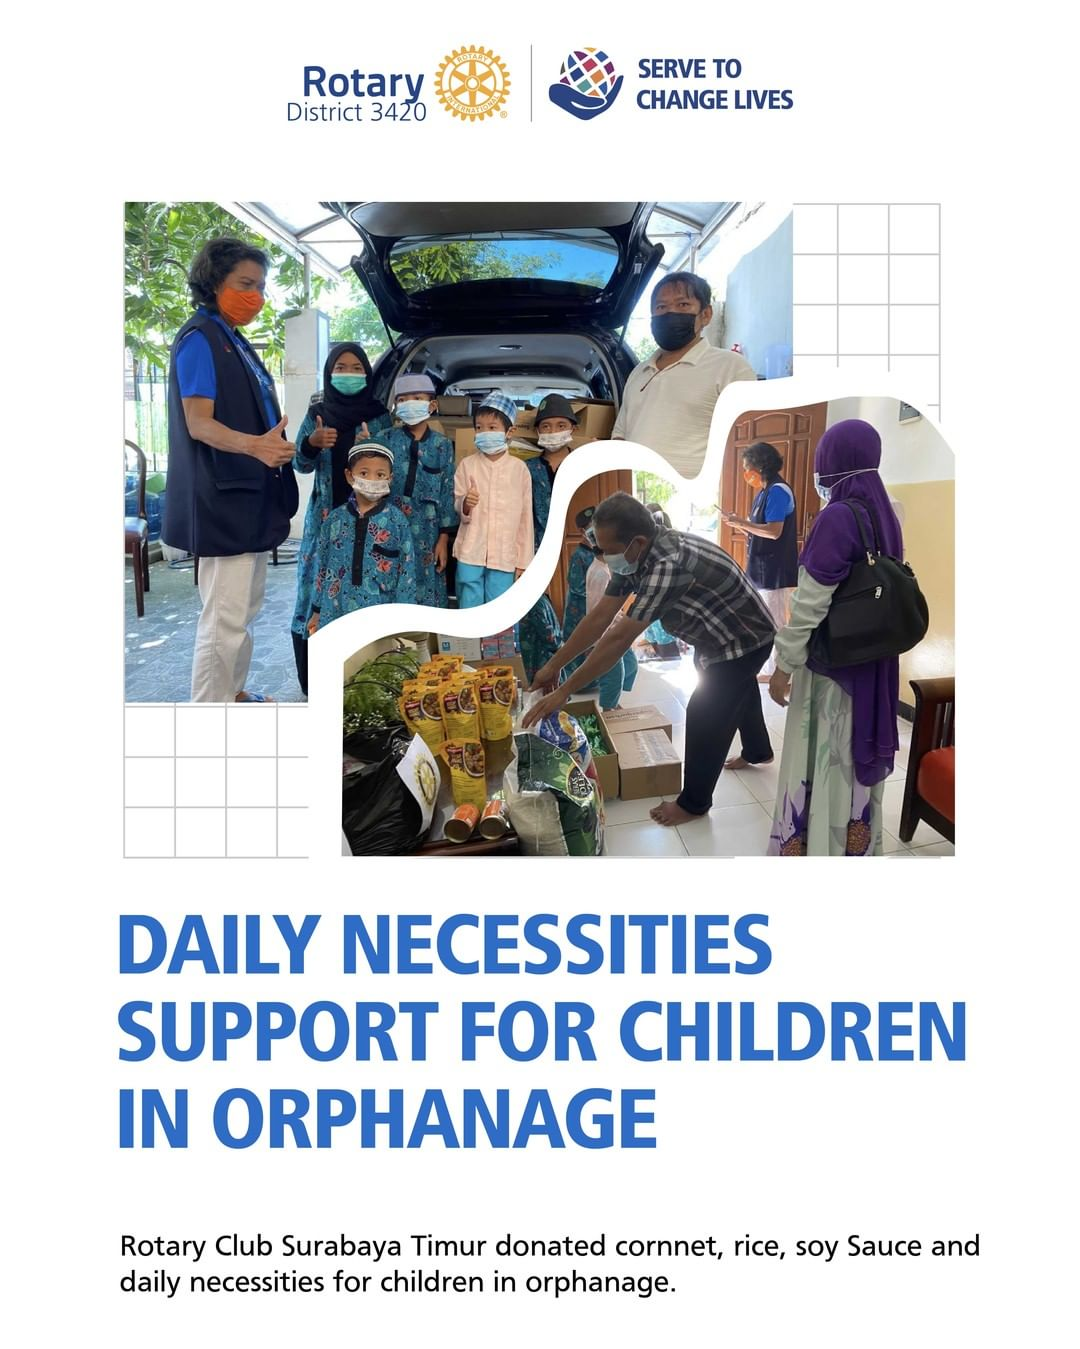 Daily Necessities Support for Children in Orphanage